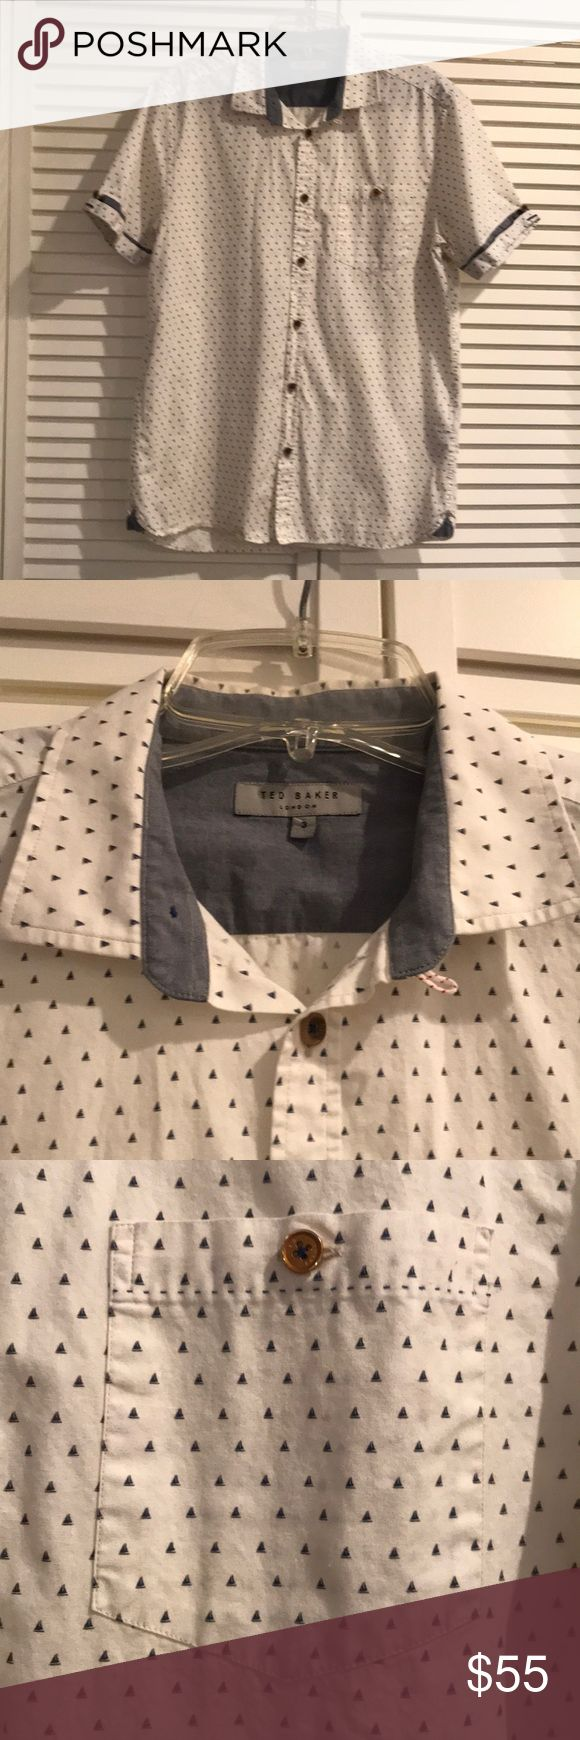 Ted Baker men's short sleeve button down Ted Baker men's short sleeve button down. Excellent like new condition. Worn only once. Ted Baker Shirts Casual Button Down Shirts